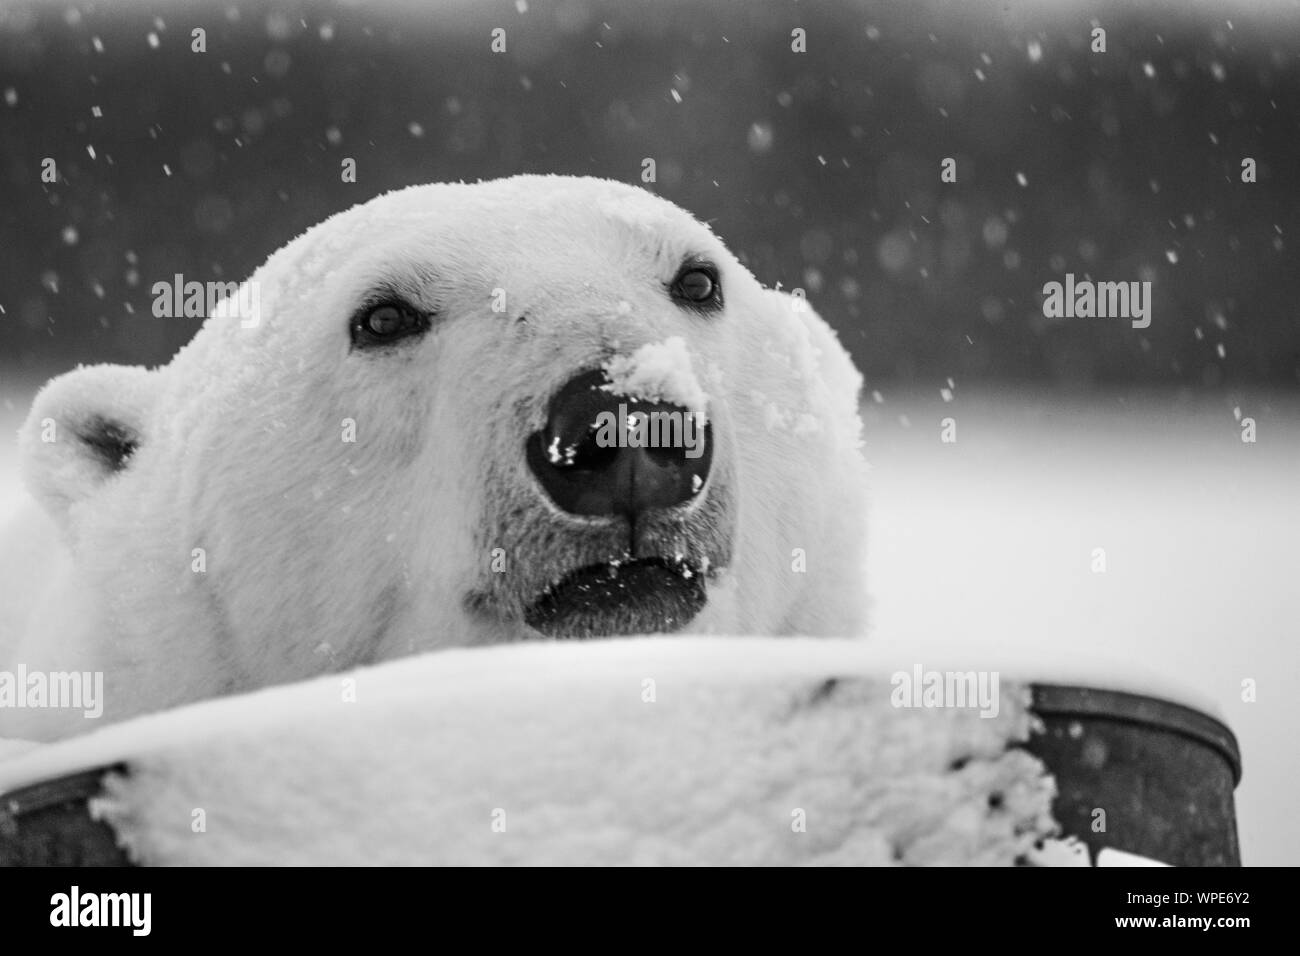 Polar bear with its nose in the  falling snow, Nanuk Lodge, West hudson Bay, Churchill, Manitoba, Canada Stock Photo